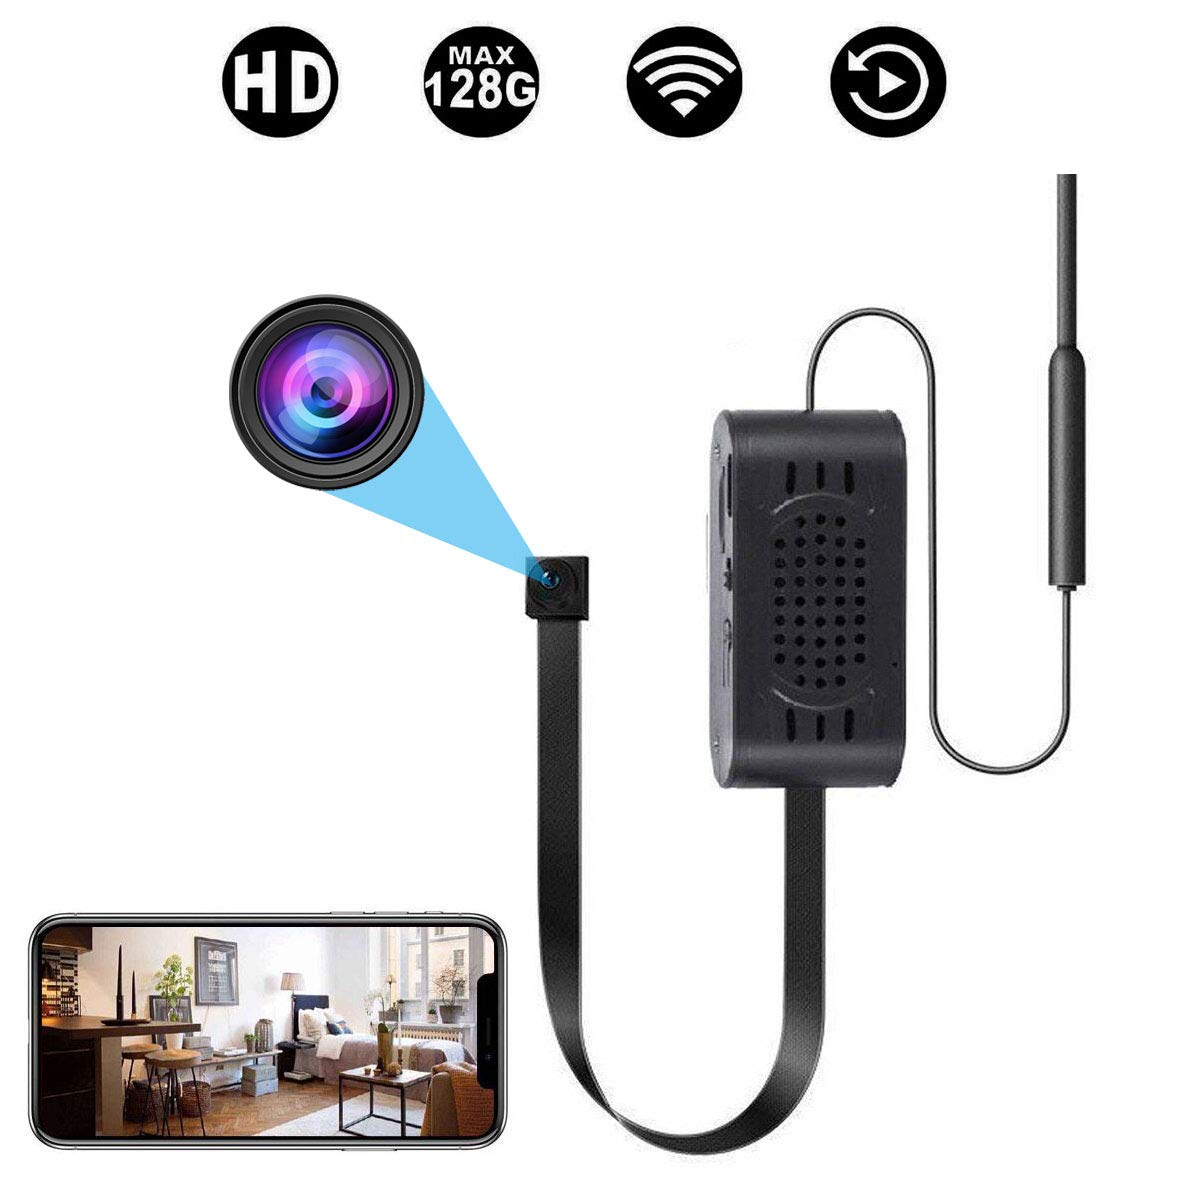 Spy Camera WiFi Hidden Cameras with Motion Detection, Mini Wireless Remote Live View with Free Phone App Full HD 1080P, Easy Setup Security Cam for Home, Nanny, Car, Office, Room, Indoor, Outdoor by TAOZHI